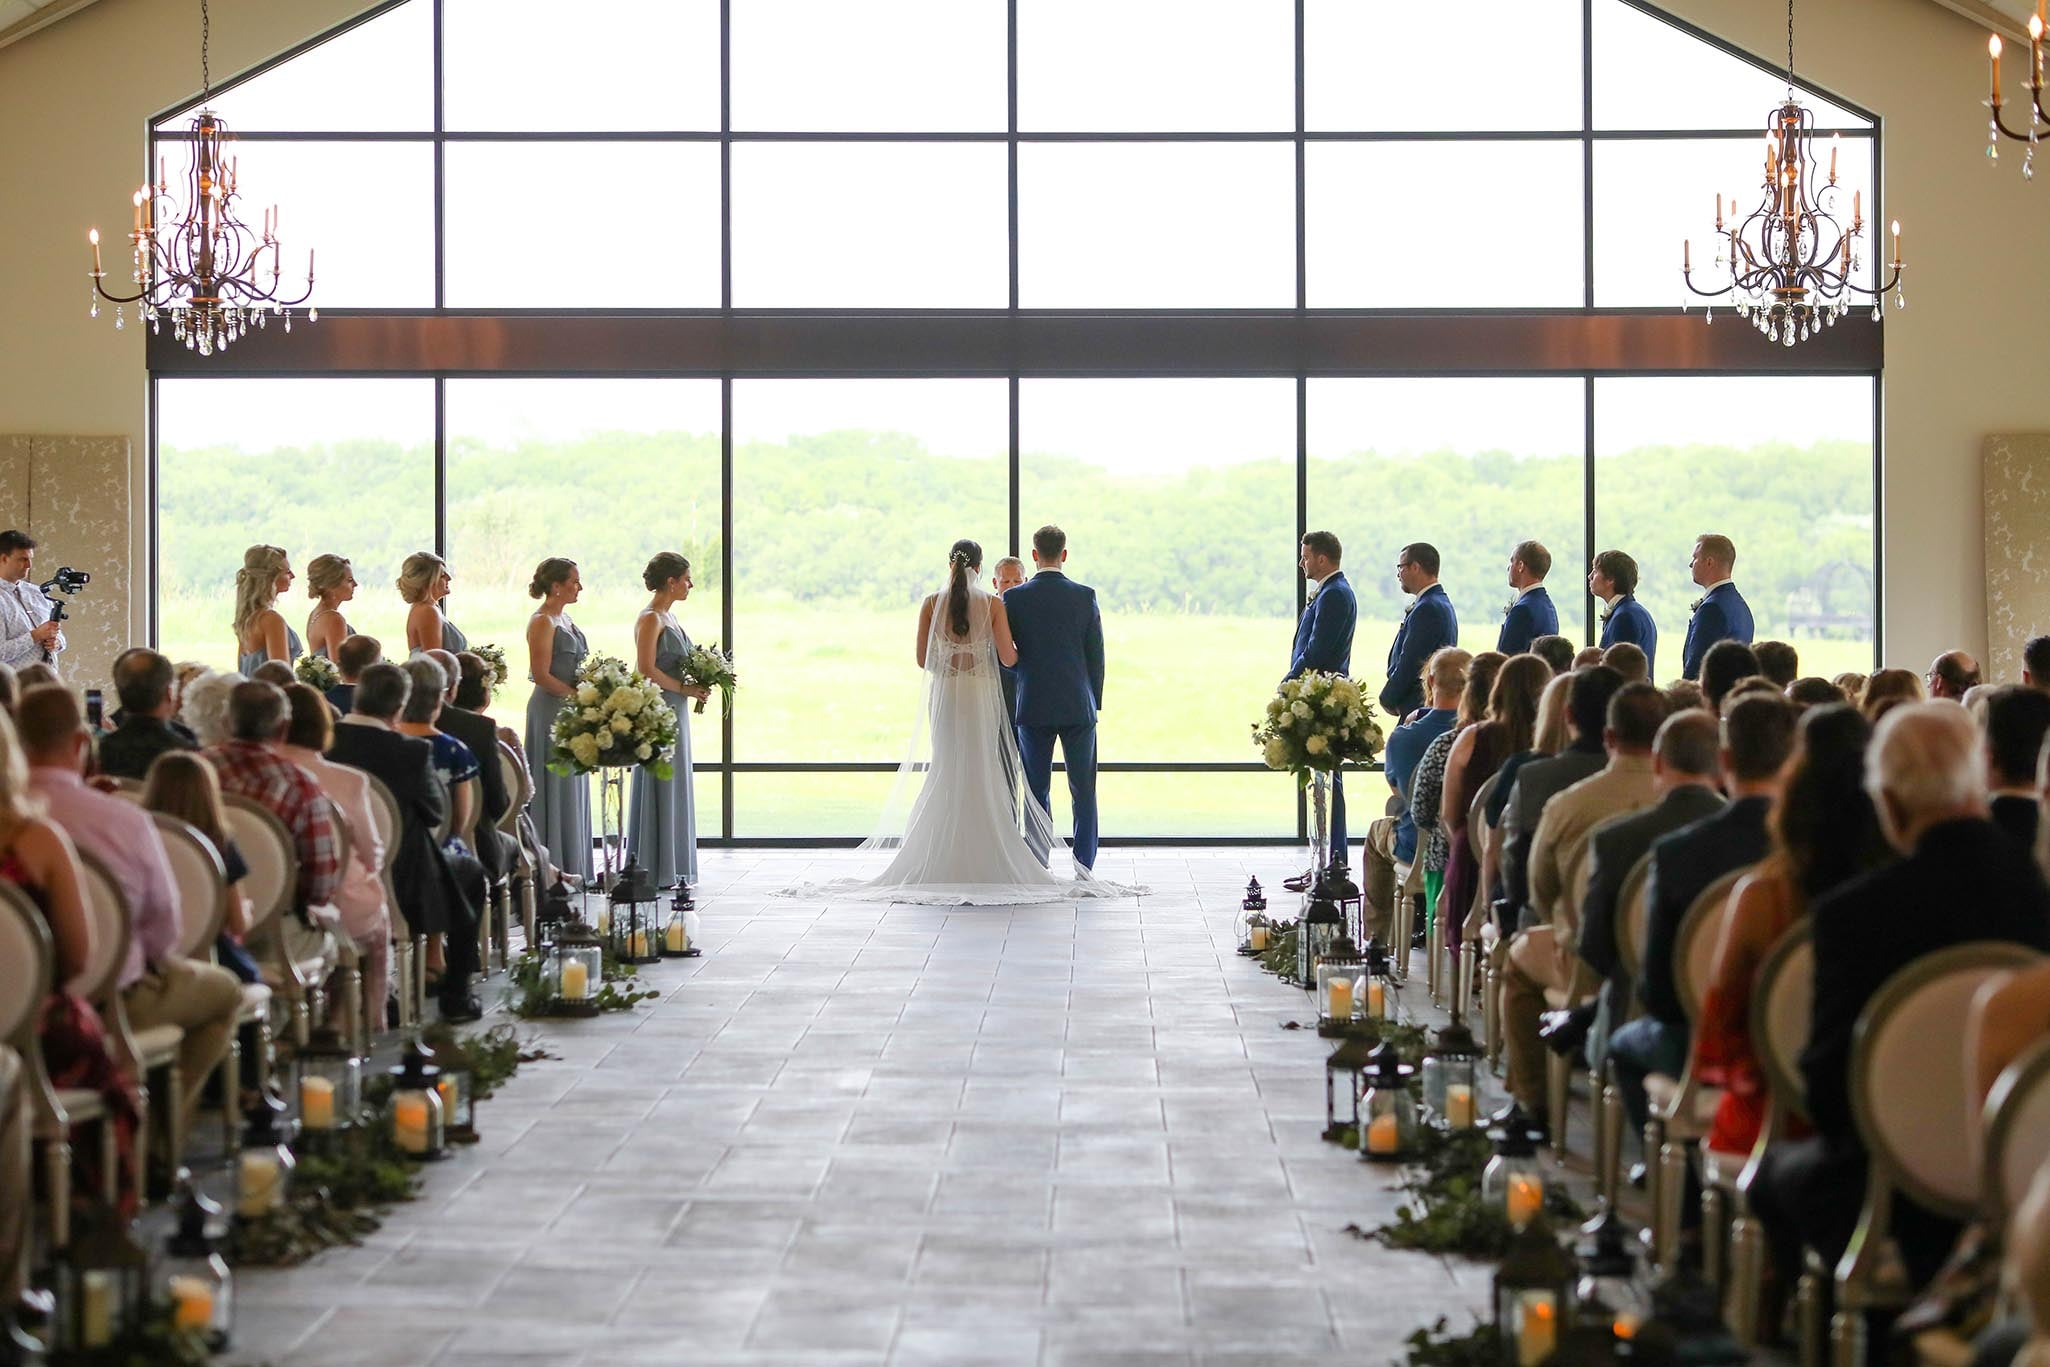 inside-ceremony-spaces-mn-bavaria-downs7.jpg